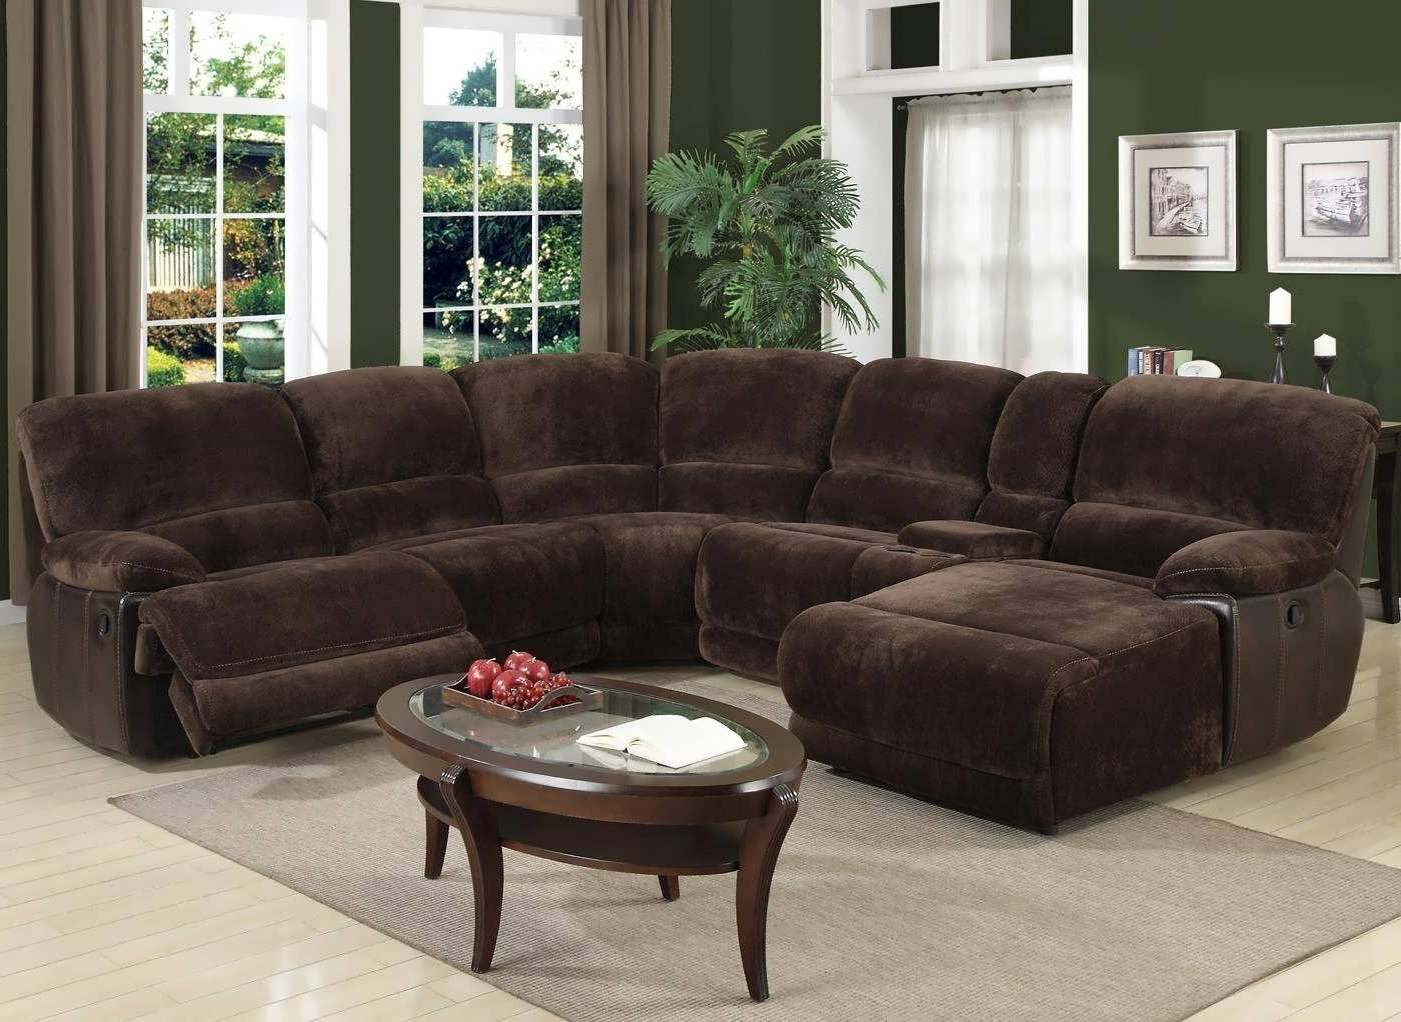 Sofa : Leather Sectional Sofa Reclining Sectional Modular Within Favorite Sectional Sofas With Chaise And Recliner (View 3 of 15)